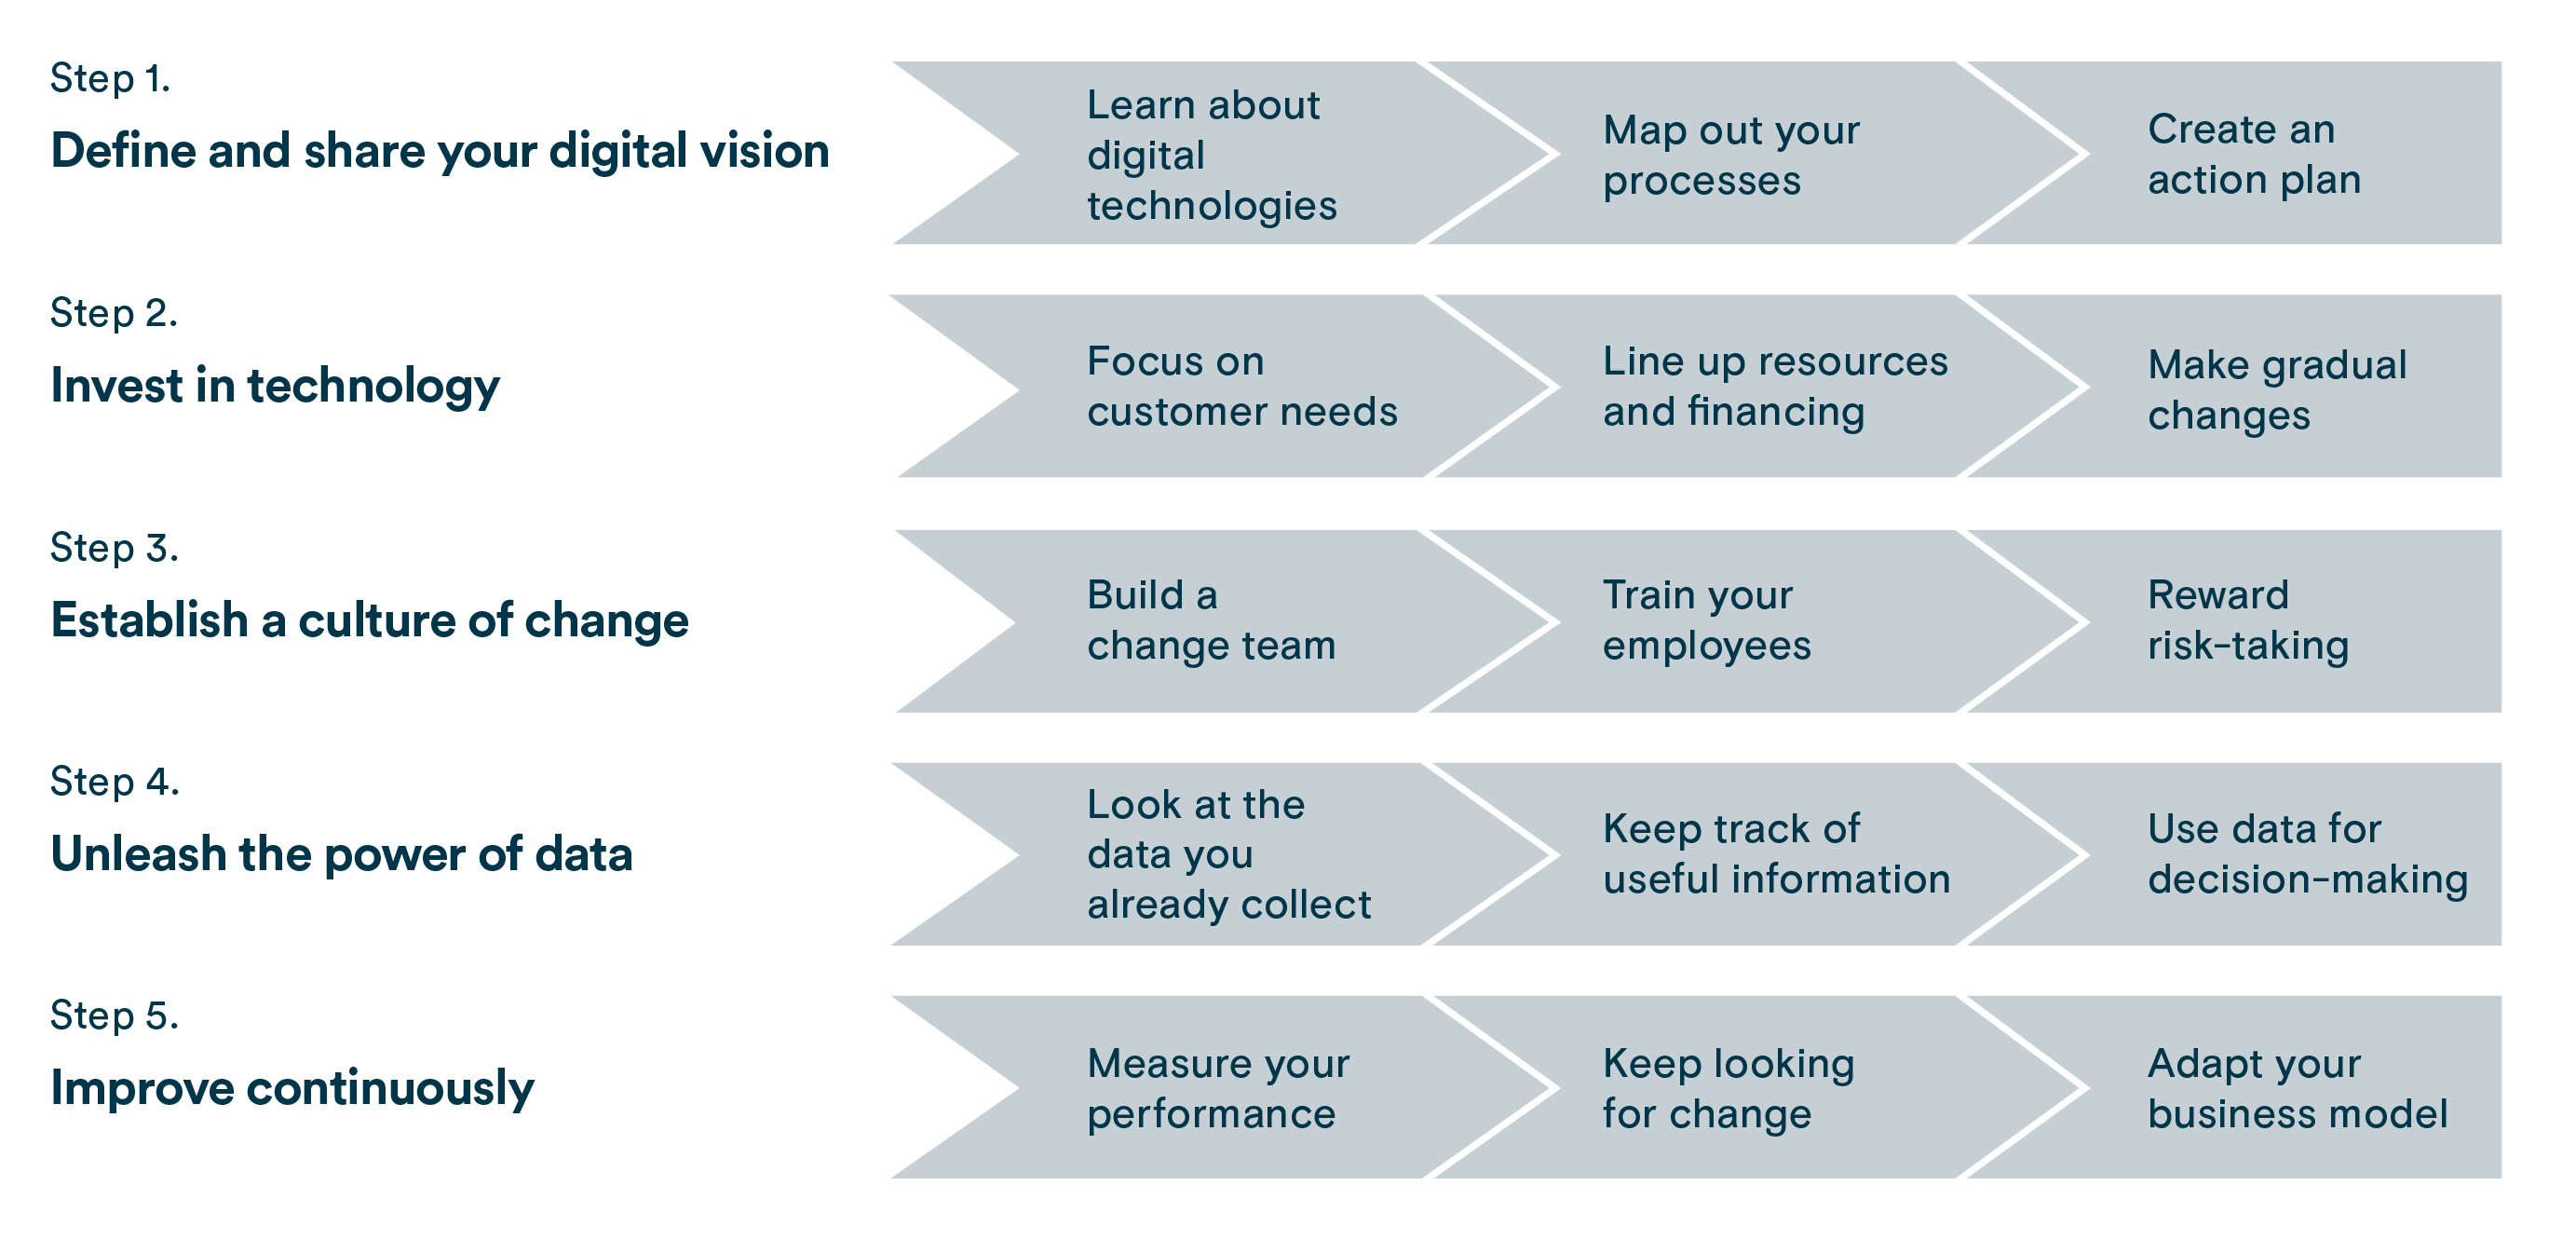 The five steps to digital maturity.